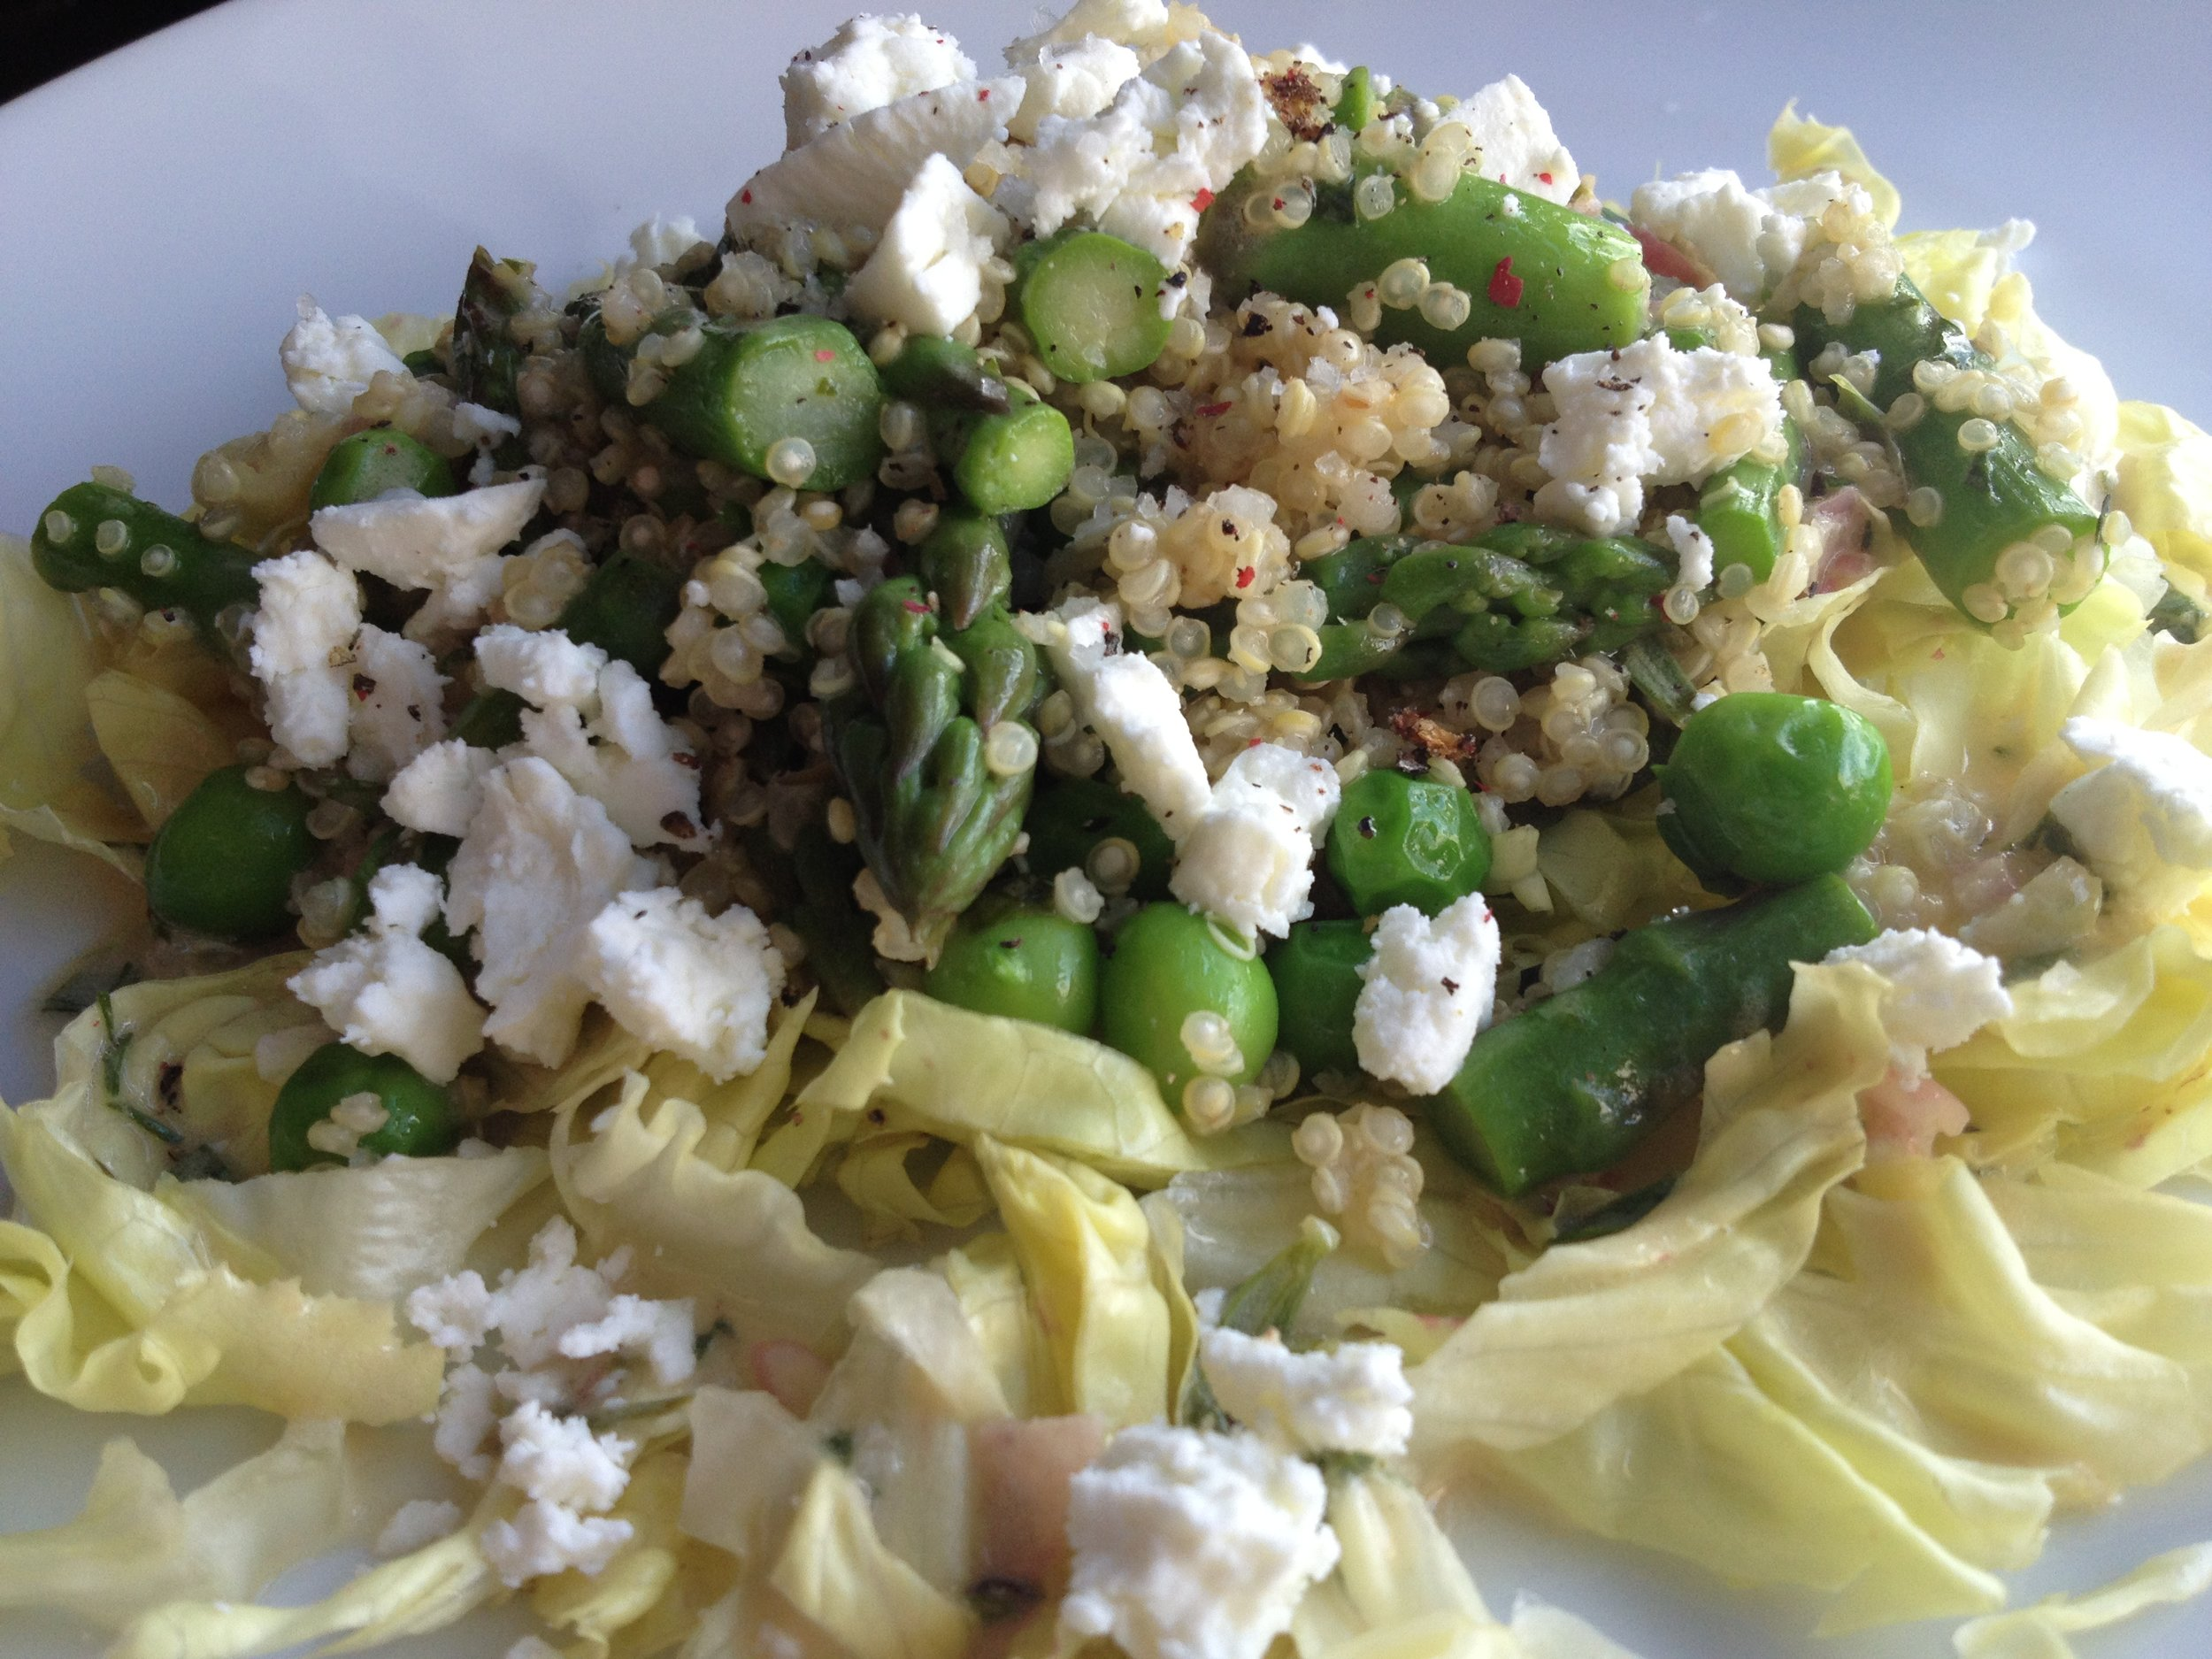 Hearty  vegetable salad, with asparagus, peas, and quinoa.